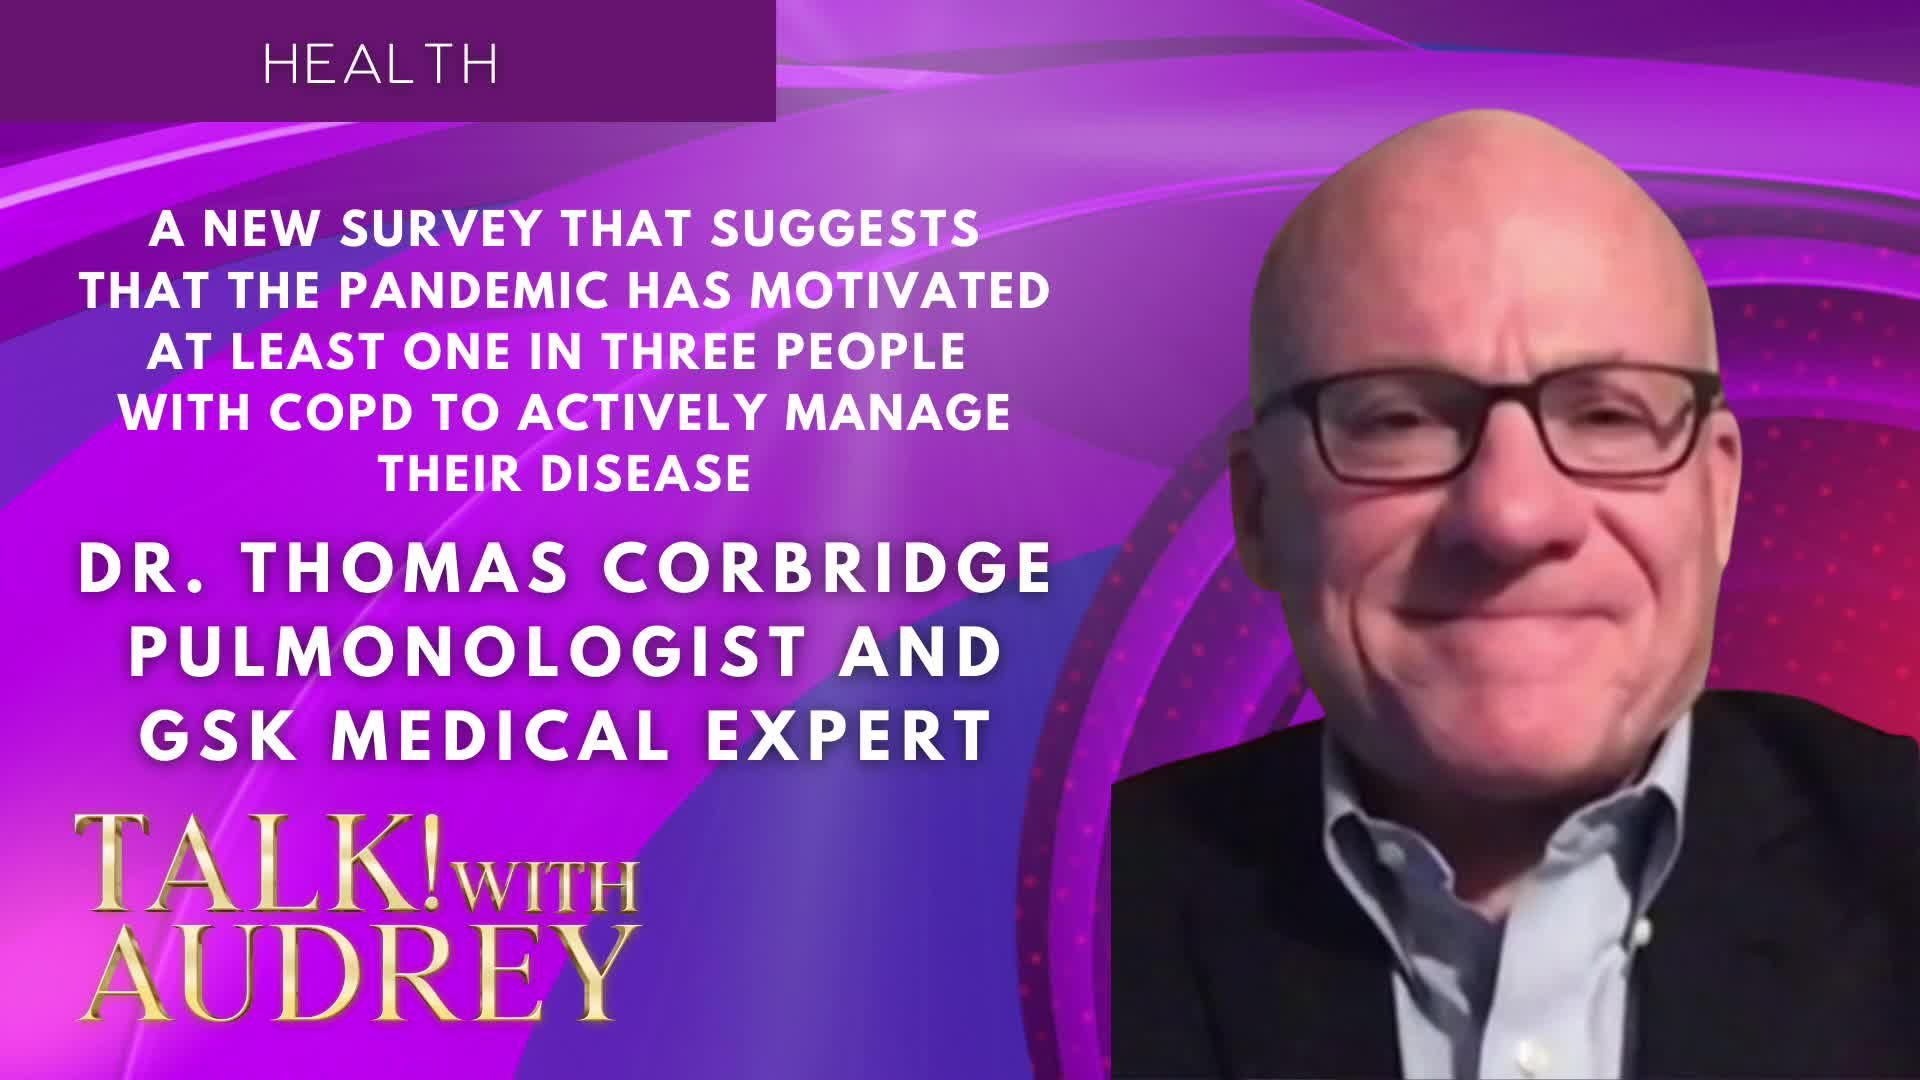 TALK! with AUDREY - Dr. Thomas Corbridge - A New Survey That Suggests That The Pandemic has Motivated at Least One in Three People with COPD to Actively Manage their Disease